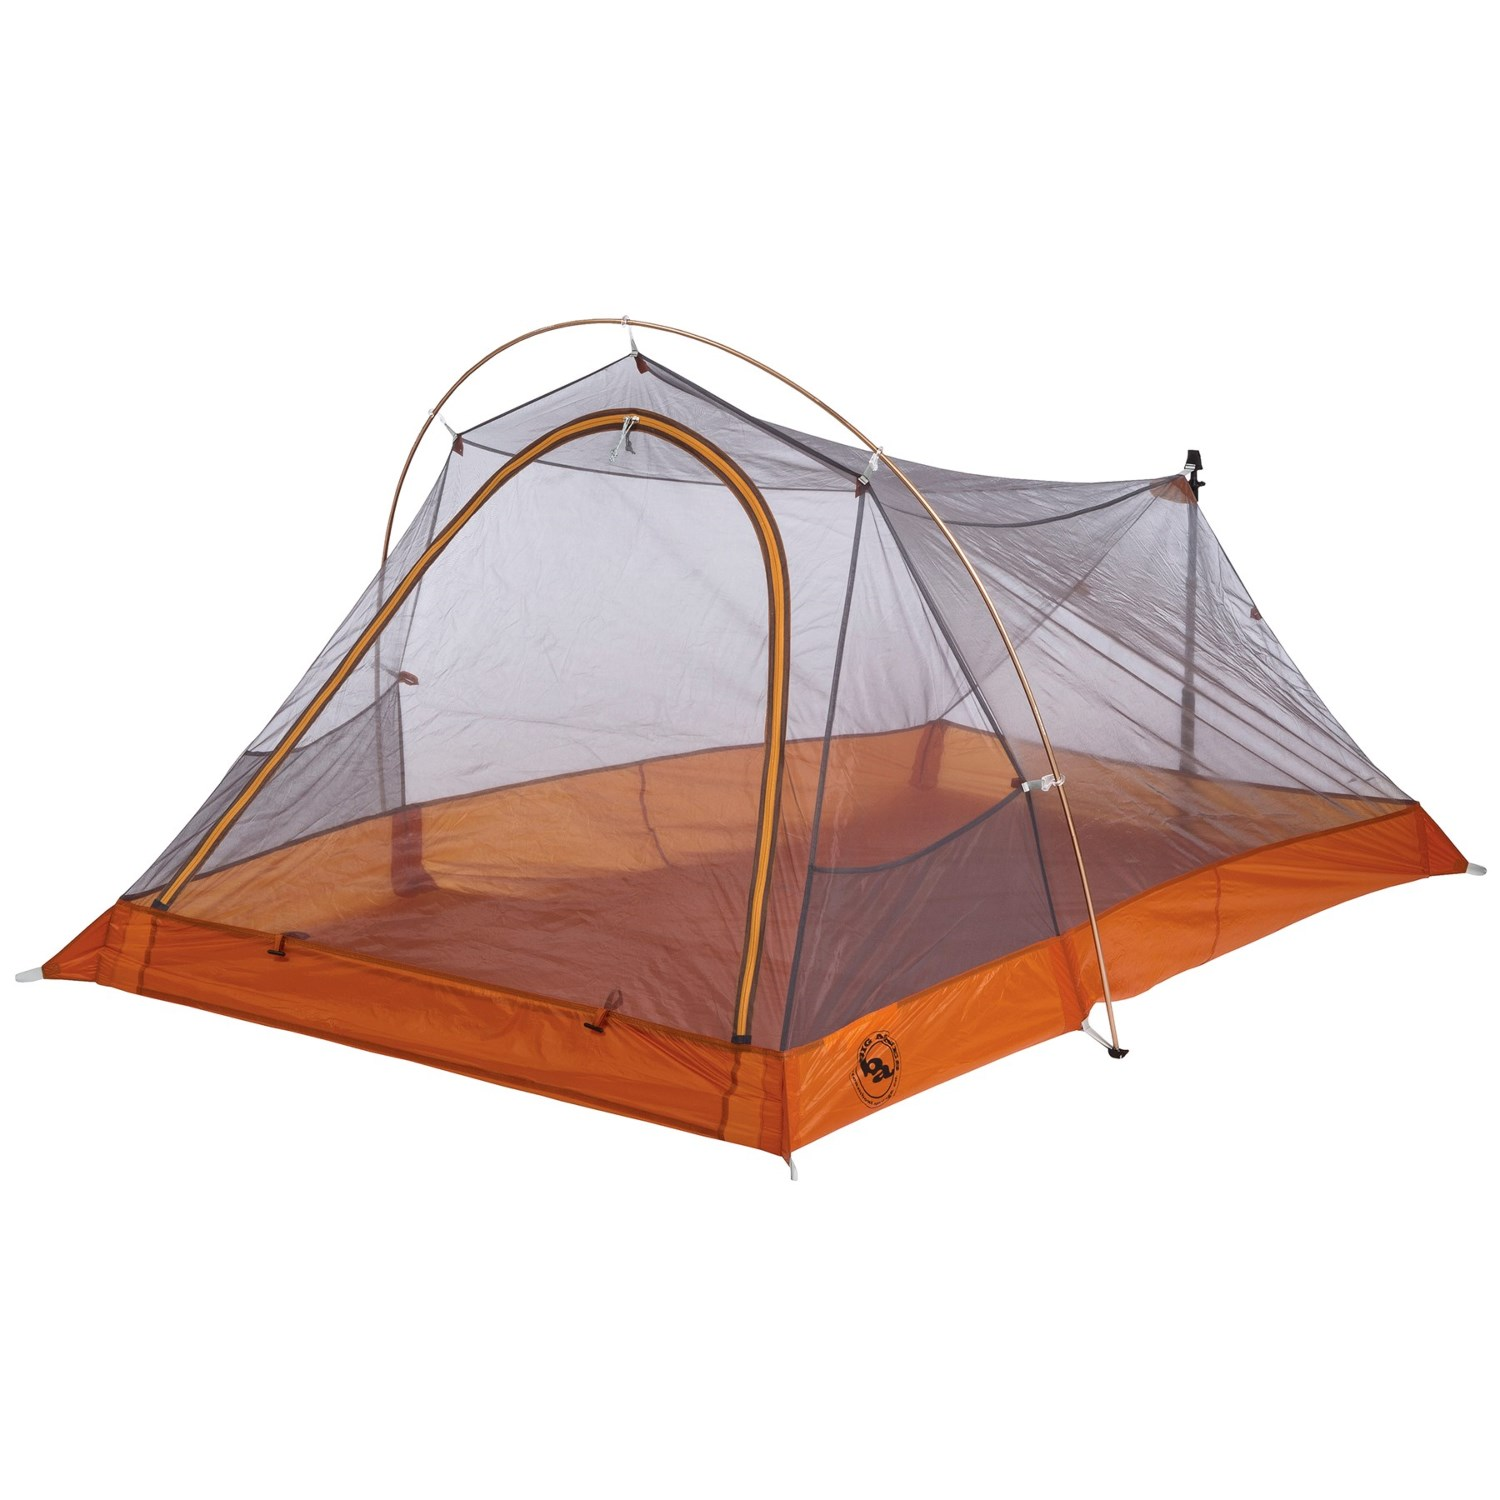 Big Agnes Bitter Springs UL 2 Tent with Footprint - 2-Person 3- ...  sc 1 st  Sierra Trading Post & Big Agnes Bitter Springs UL 2 Tent with Footprint - 2-Person 3 ...